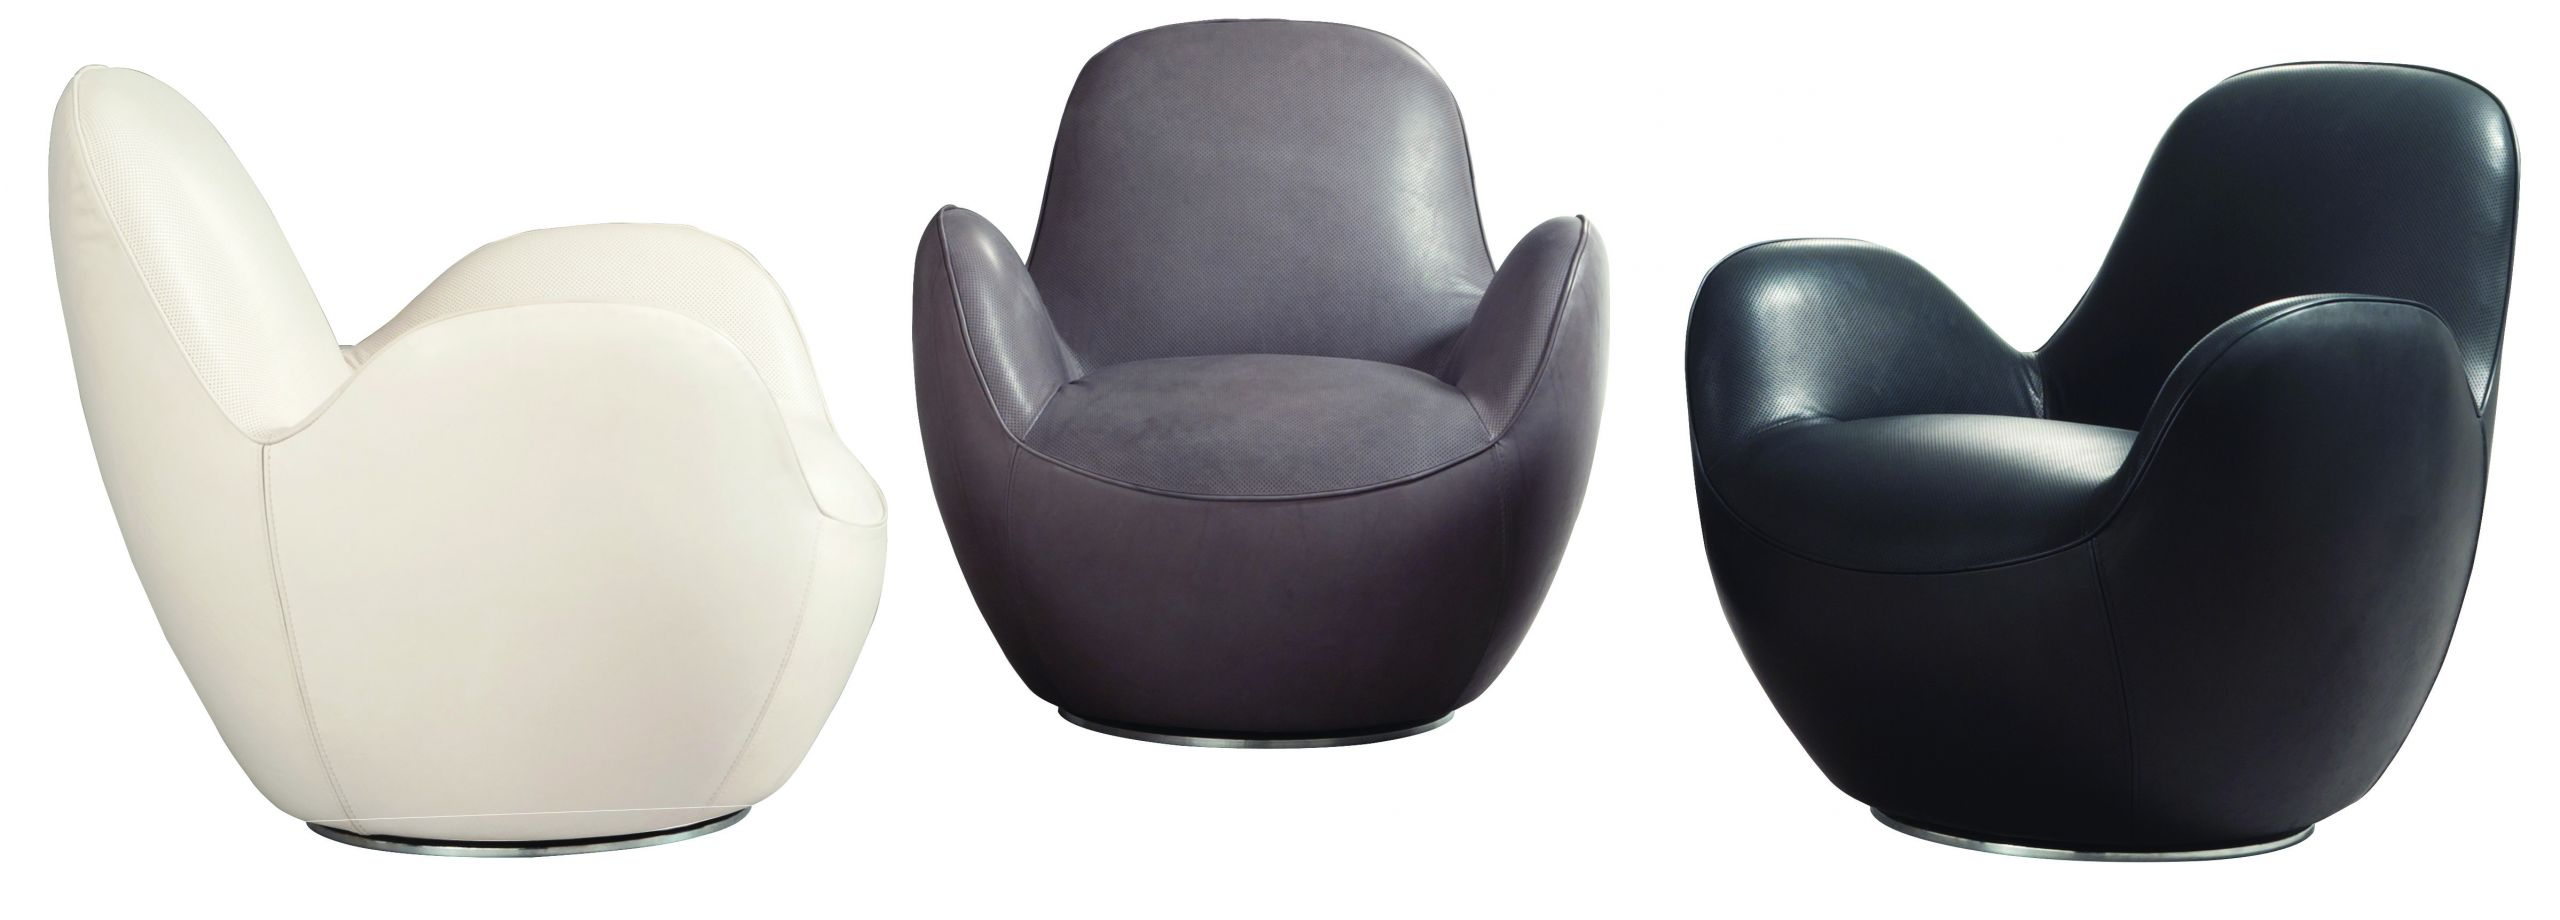 Roche Bobois Perpignan Aircell Fauteuil Chairs With Fauteuil Bubble Roche Bobois Idees Conception Jardin Idees Conception Jardin